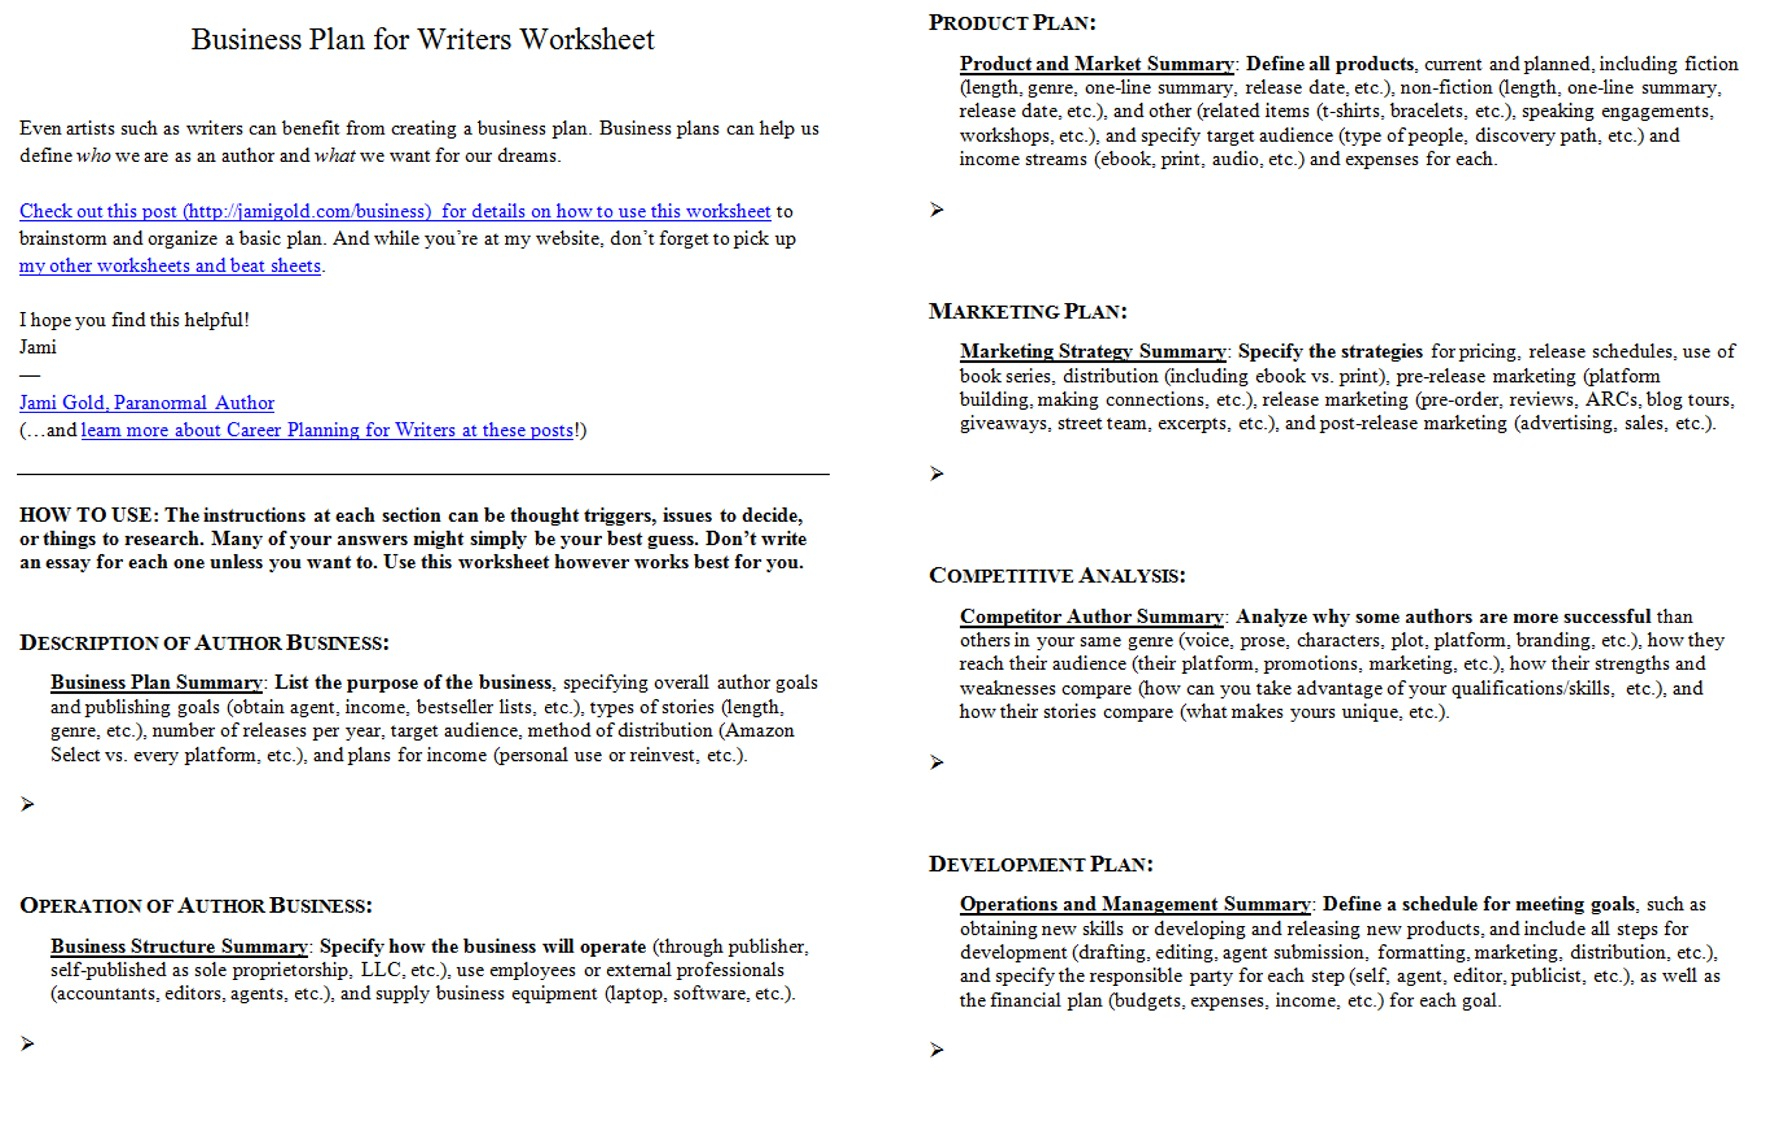 Aldiablosus  Marvelous Worksheets For Writers  Jami Gold Paranormal Author With Lovable Screen Shot Of Both Pages Of The Business Plan For Writers Worksheet With Astounding Science Brain Teasers Worksheets Also Colour Worksheet In Addition Cvc Blending Worksheets And Grade  Symmetry Worksheets As Well As Online English Worksheets Additionally Adverb Worksheets For Grade  From Jamigoldcom With Aldiablosus  Lovable Worksheets For Writers  Jami Gold Paranormal Author With Astounding Screen Shot Of Both Pages Of The Business Plan For Writers Worksheet And Marvelous Science Brain Teasers Worksheets Also Colour Worksheet In Addition Cvc Blending Worksheets From Jamigoldcom